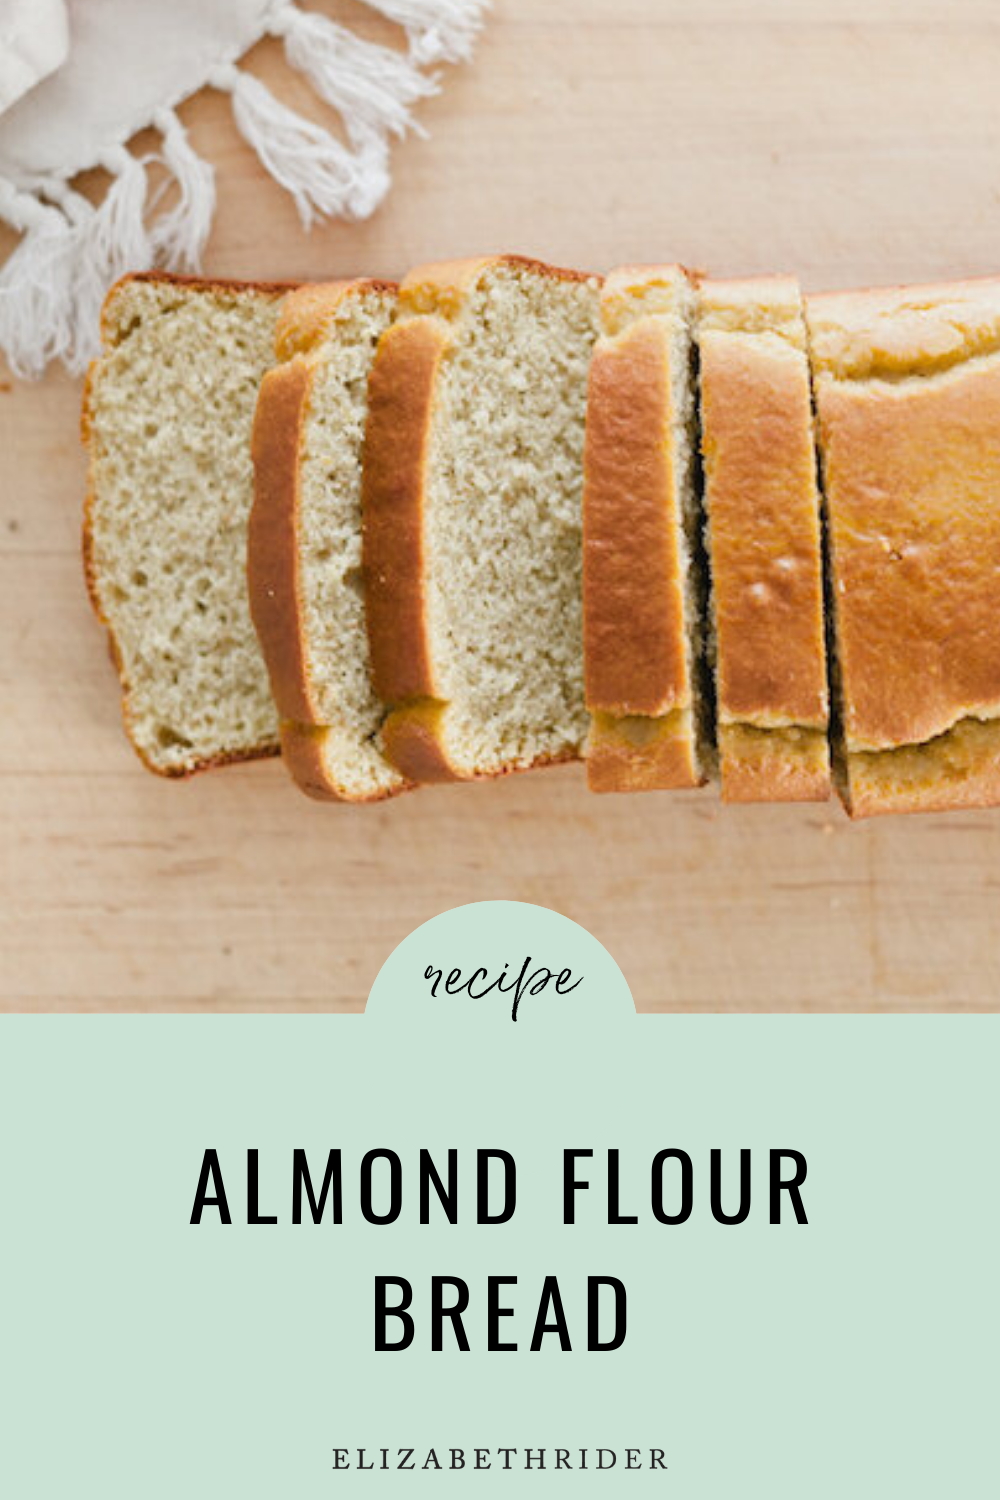 Healthy Almond Flour Bread Recipe Gluten Free Recipe In 2020 Almond Flour Bread Almond Flour Recipes Almond Flour Bread Recipes